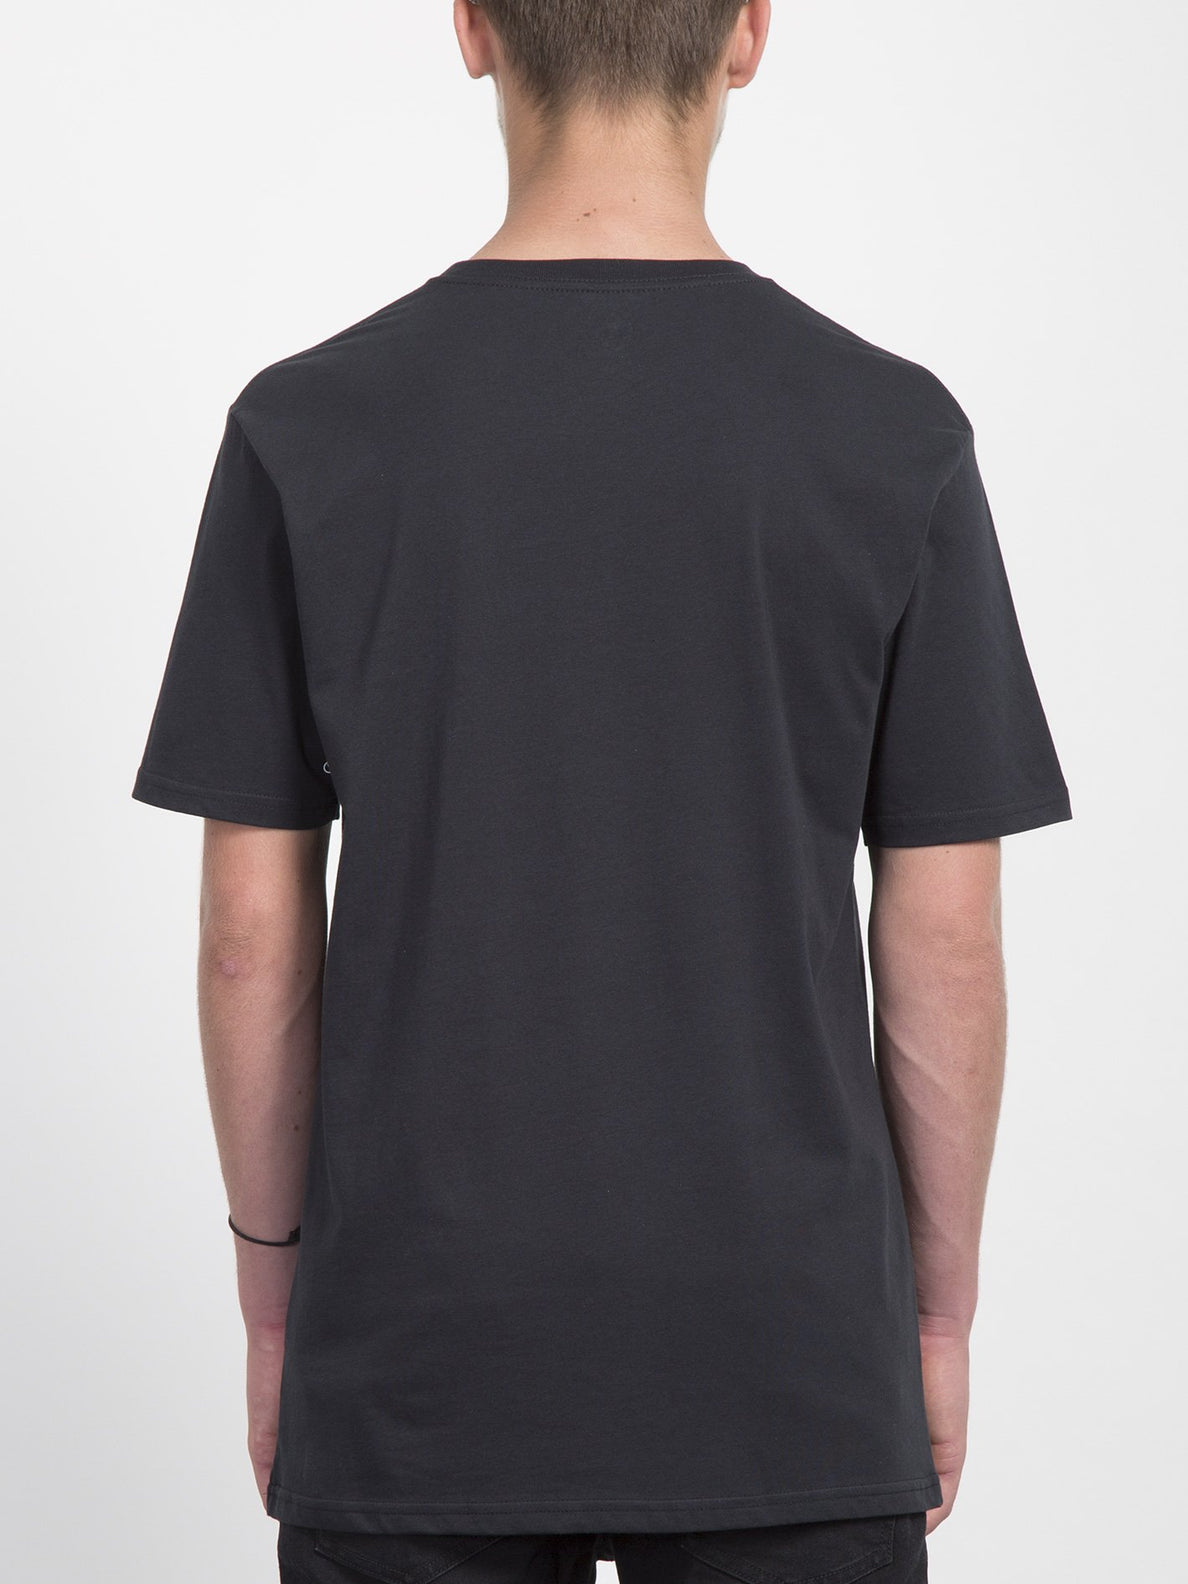 Cresticle T-Shirt - Black